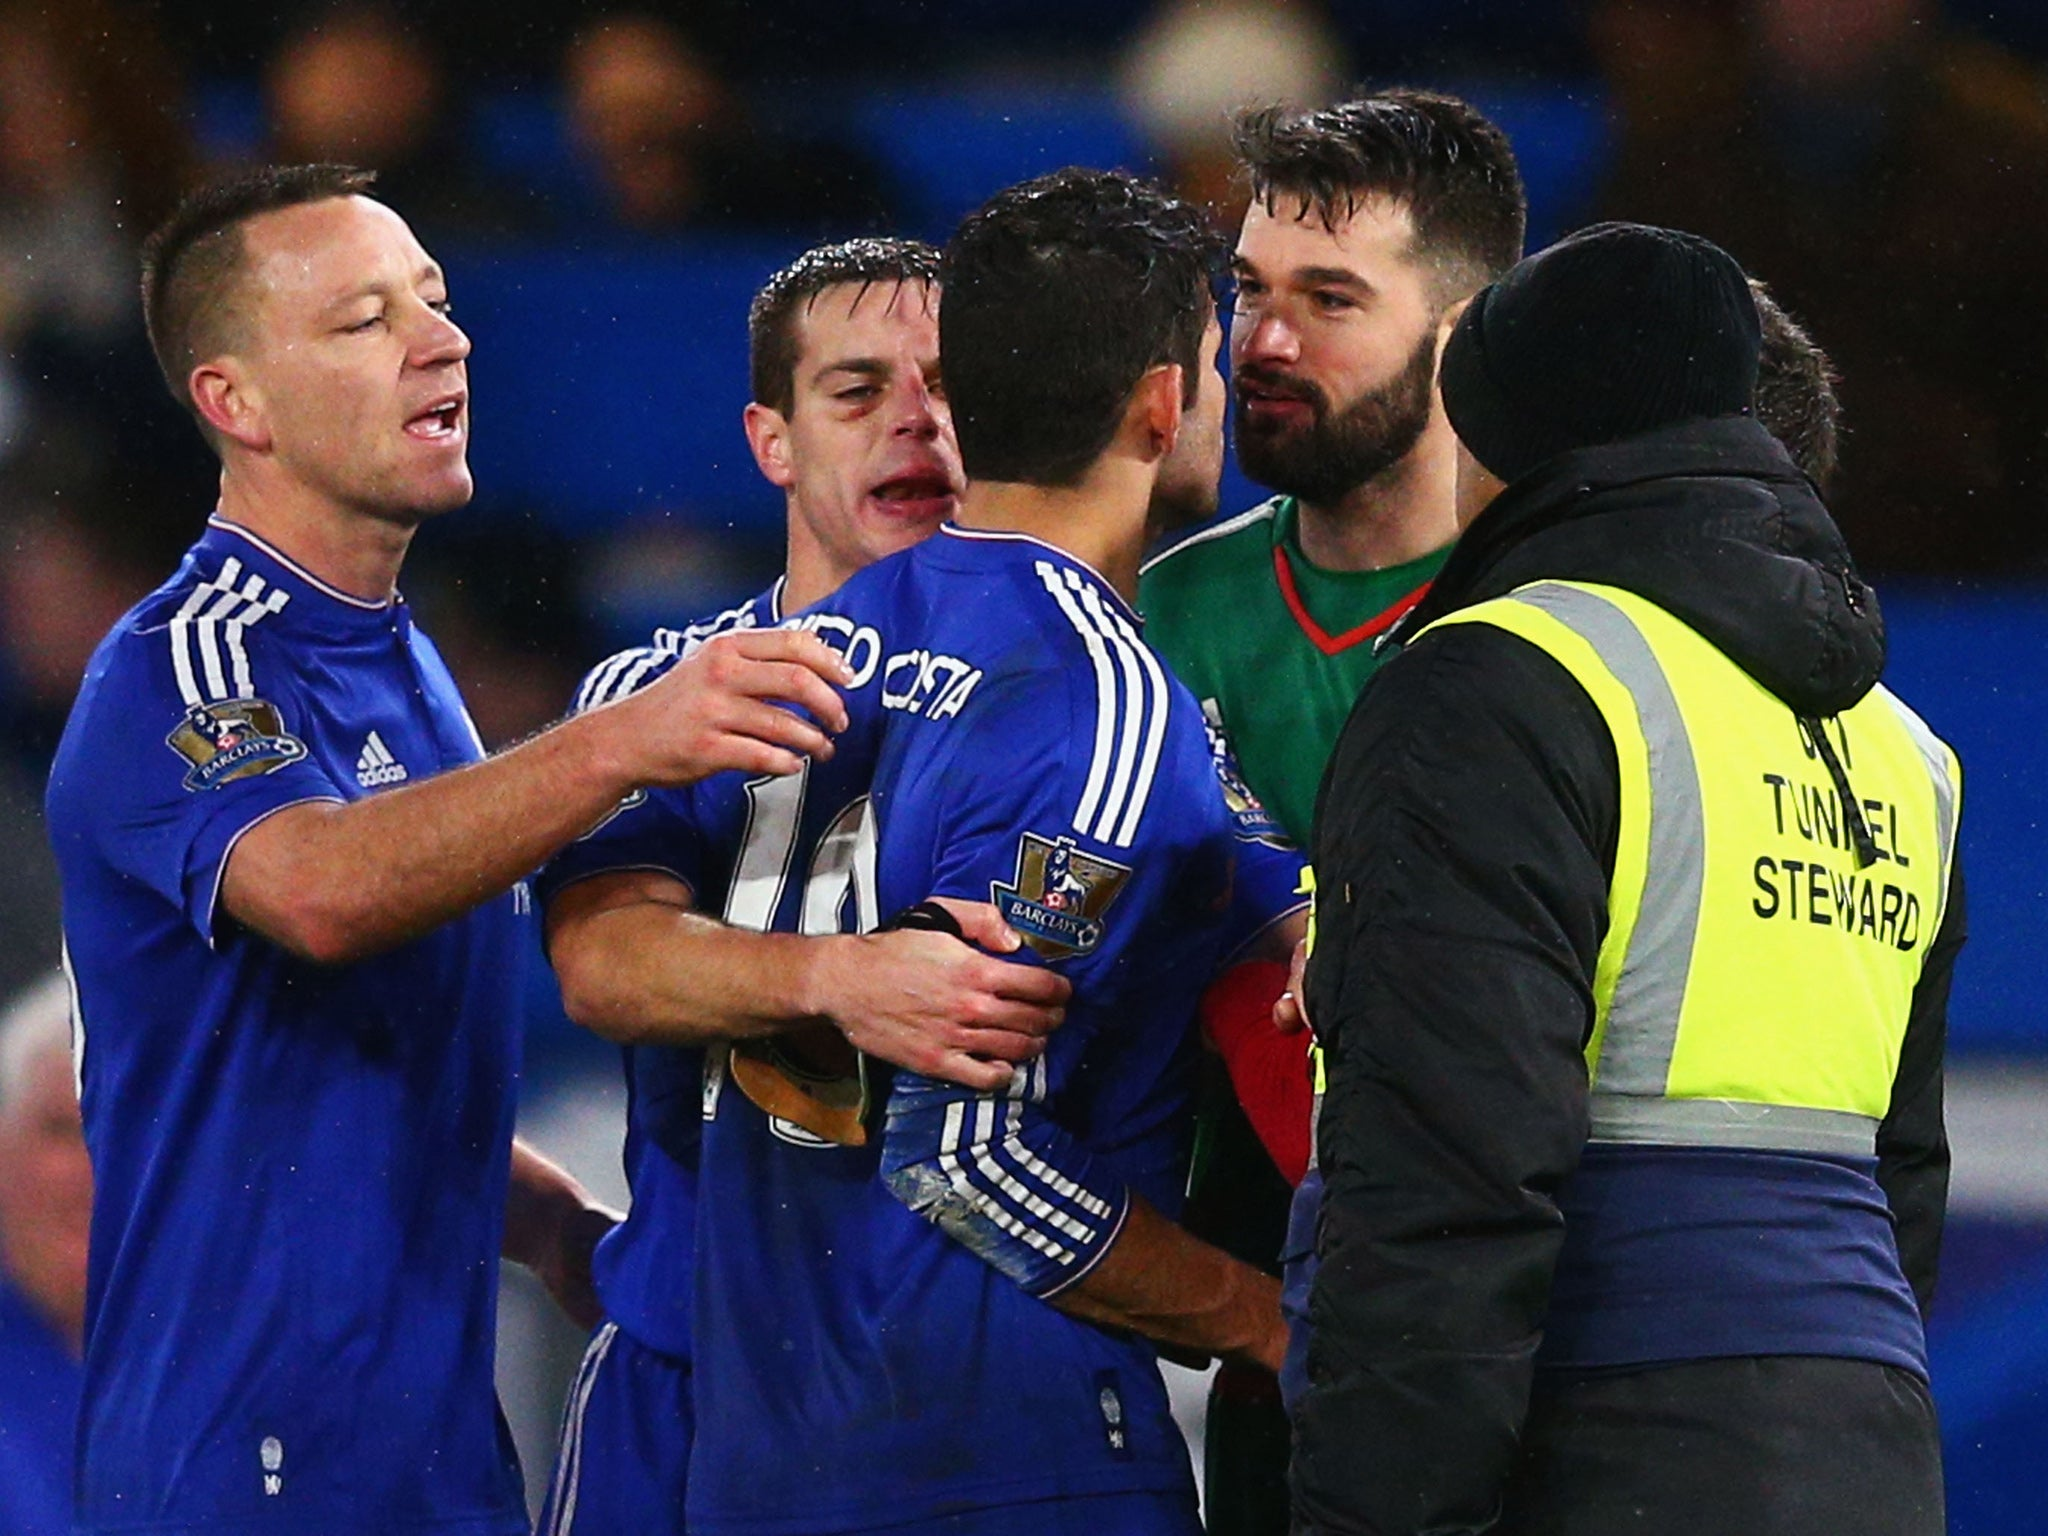 Chelsea vs West Brom match report: Diego Costa fury as his side fall to late James McClean leveller